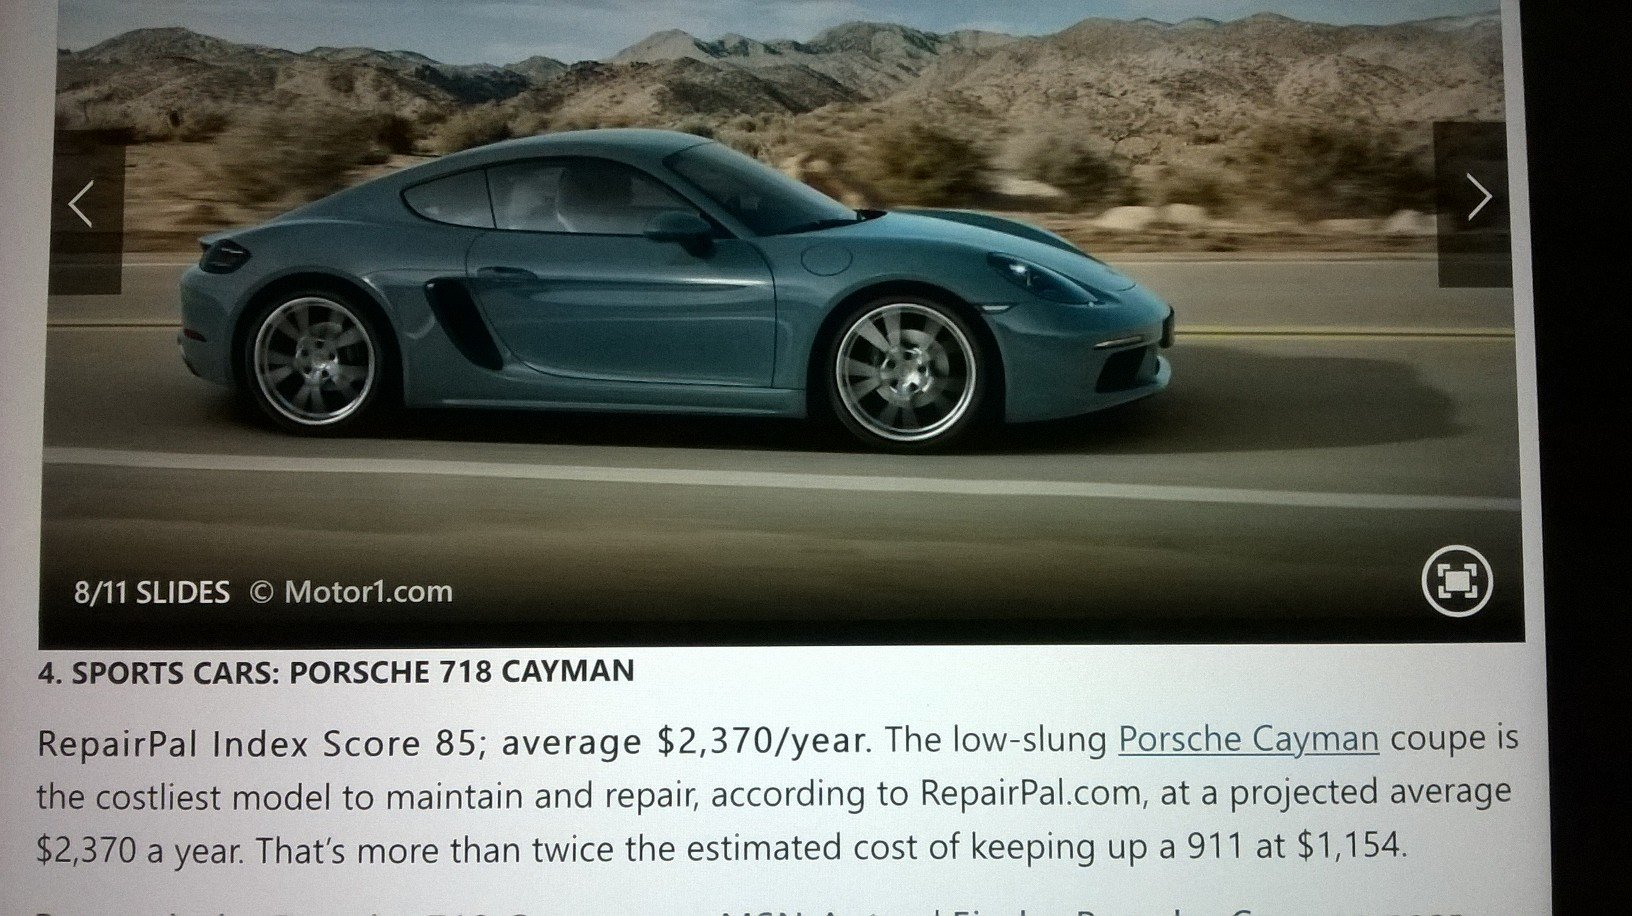 porsche cayman gts 2018 with 13321 Most Expensive Maintain Repair on 13321 Most Expensive Maintain Repair likewise porscheofranchomirage likewise 766429 2014 Cayman Saphire Blue And Rhodium Silver Pics together with Watch furthermore Porsche 959 Engine 2.